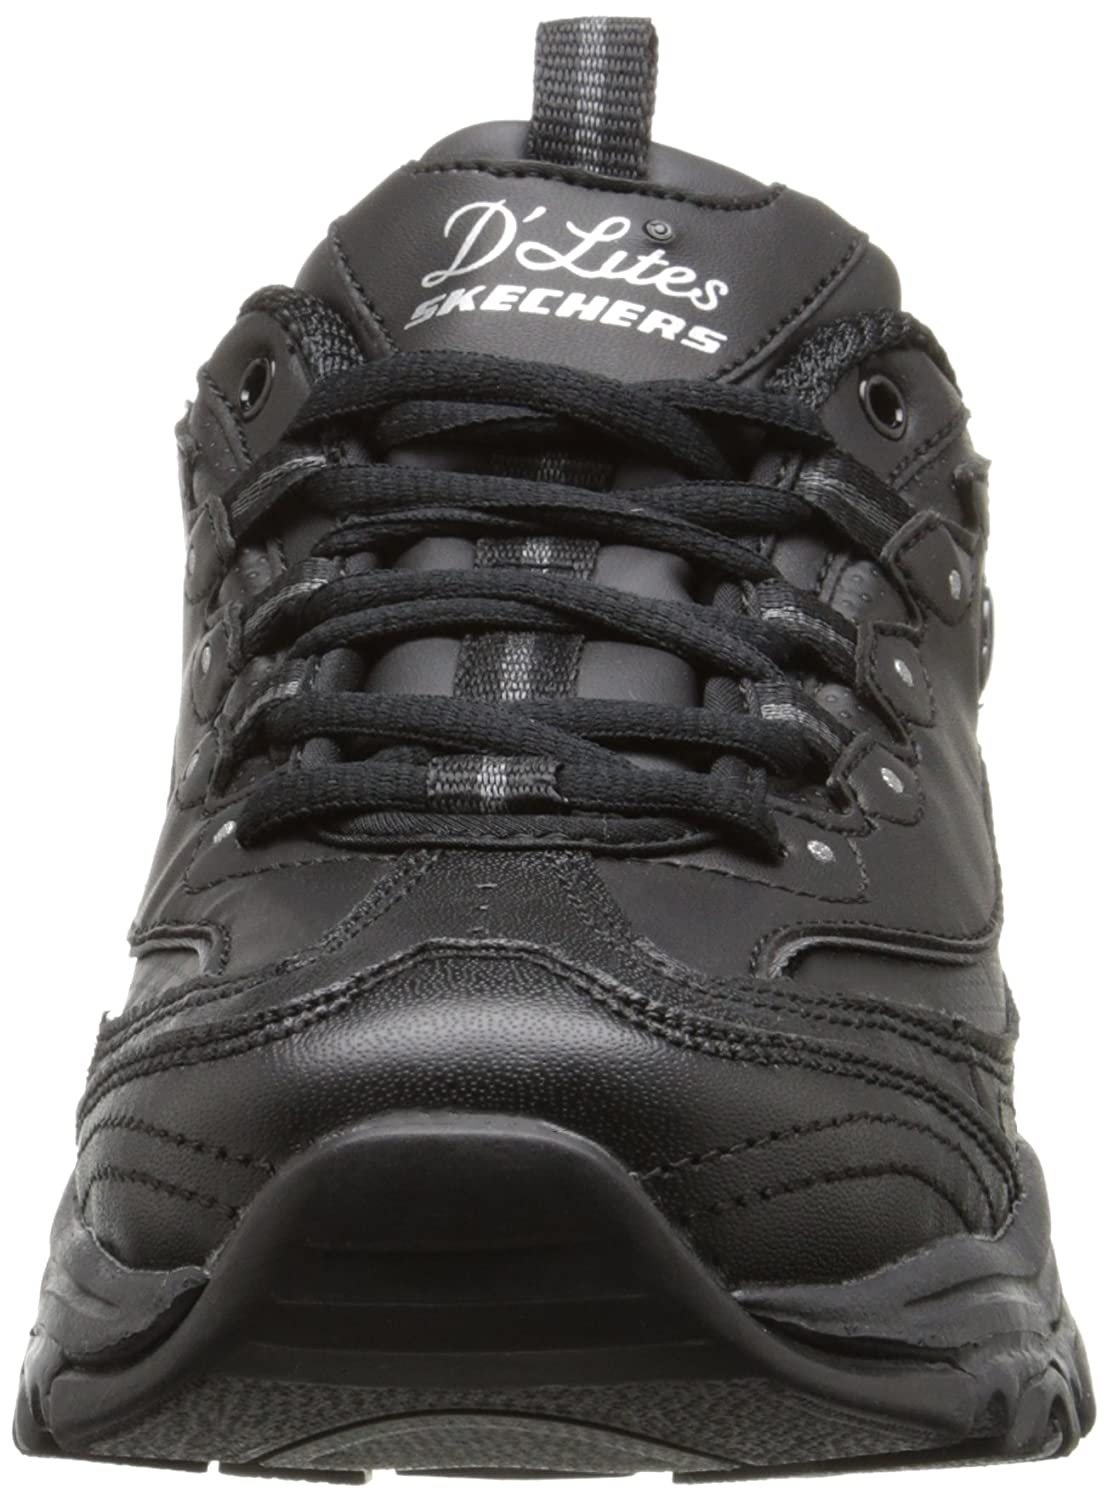 Skechers-D-039-Lites-Women-039-s-Casual-Lightweight-Fashion-Sneakers-Athletic-Shoes thumbnail 56